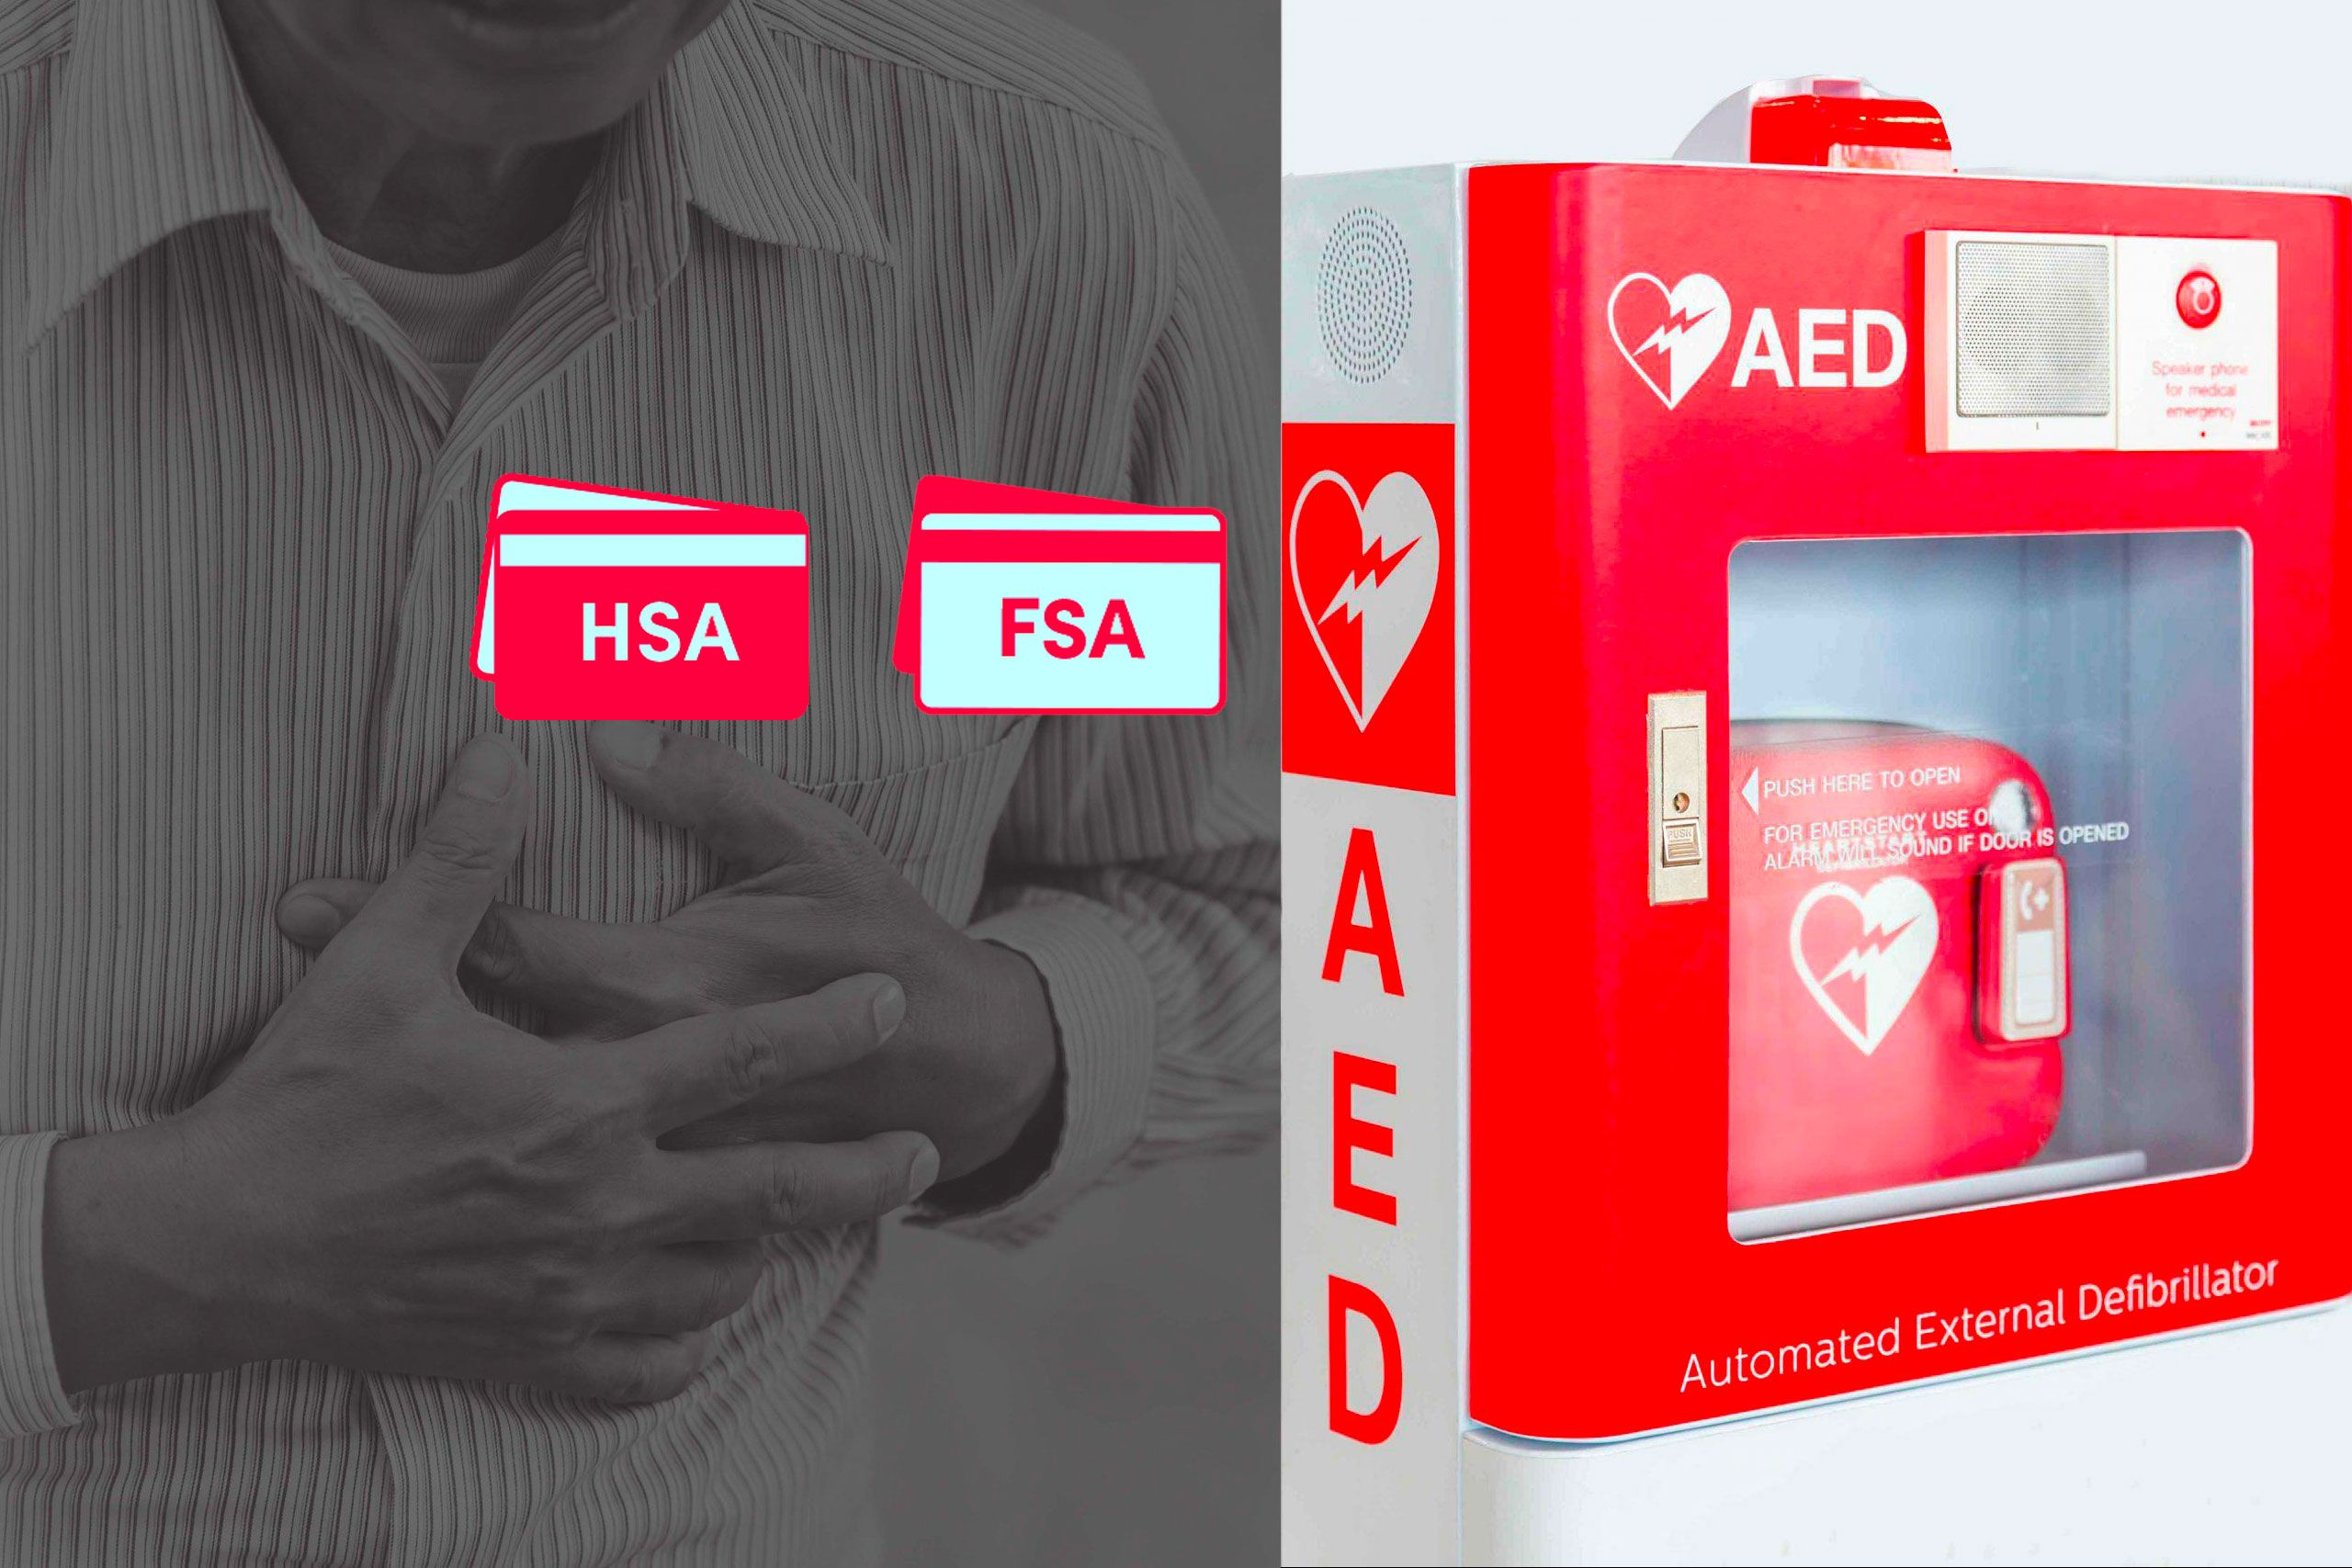 You can buy an AED with your HSA or FSA